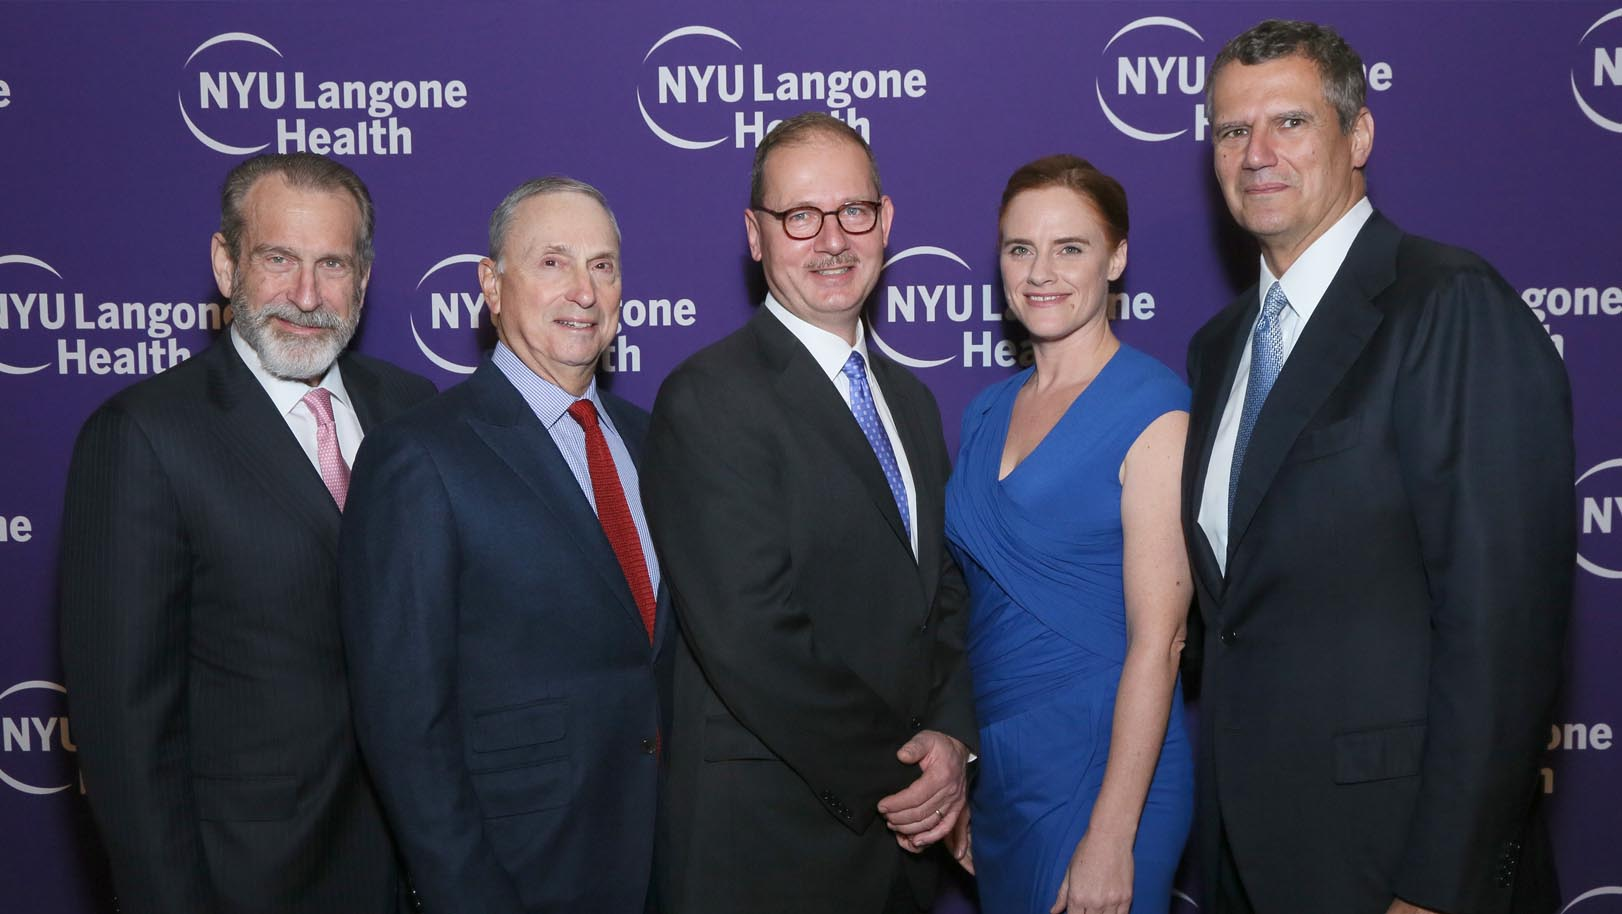 The 2017 NYU Langone Health Musculoskeletal Ball Honoring Patrick A. Meere, MD, Sophie Nicholson, and Tarek Sherif.